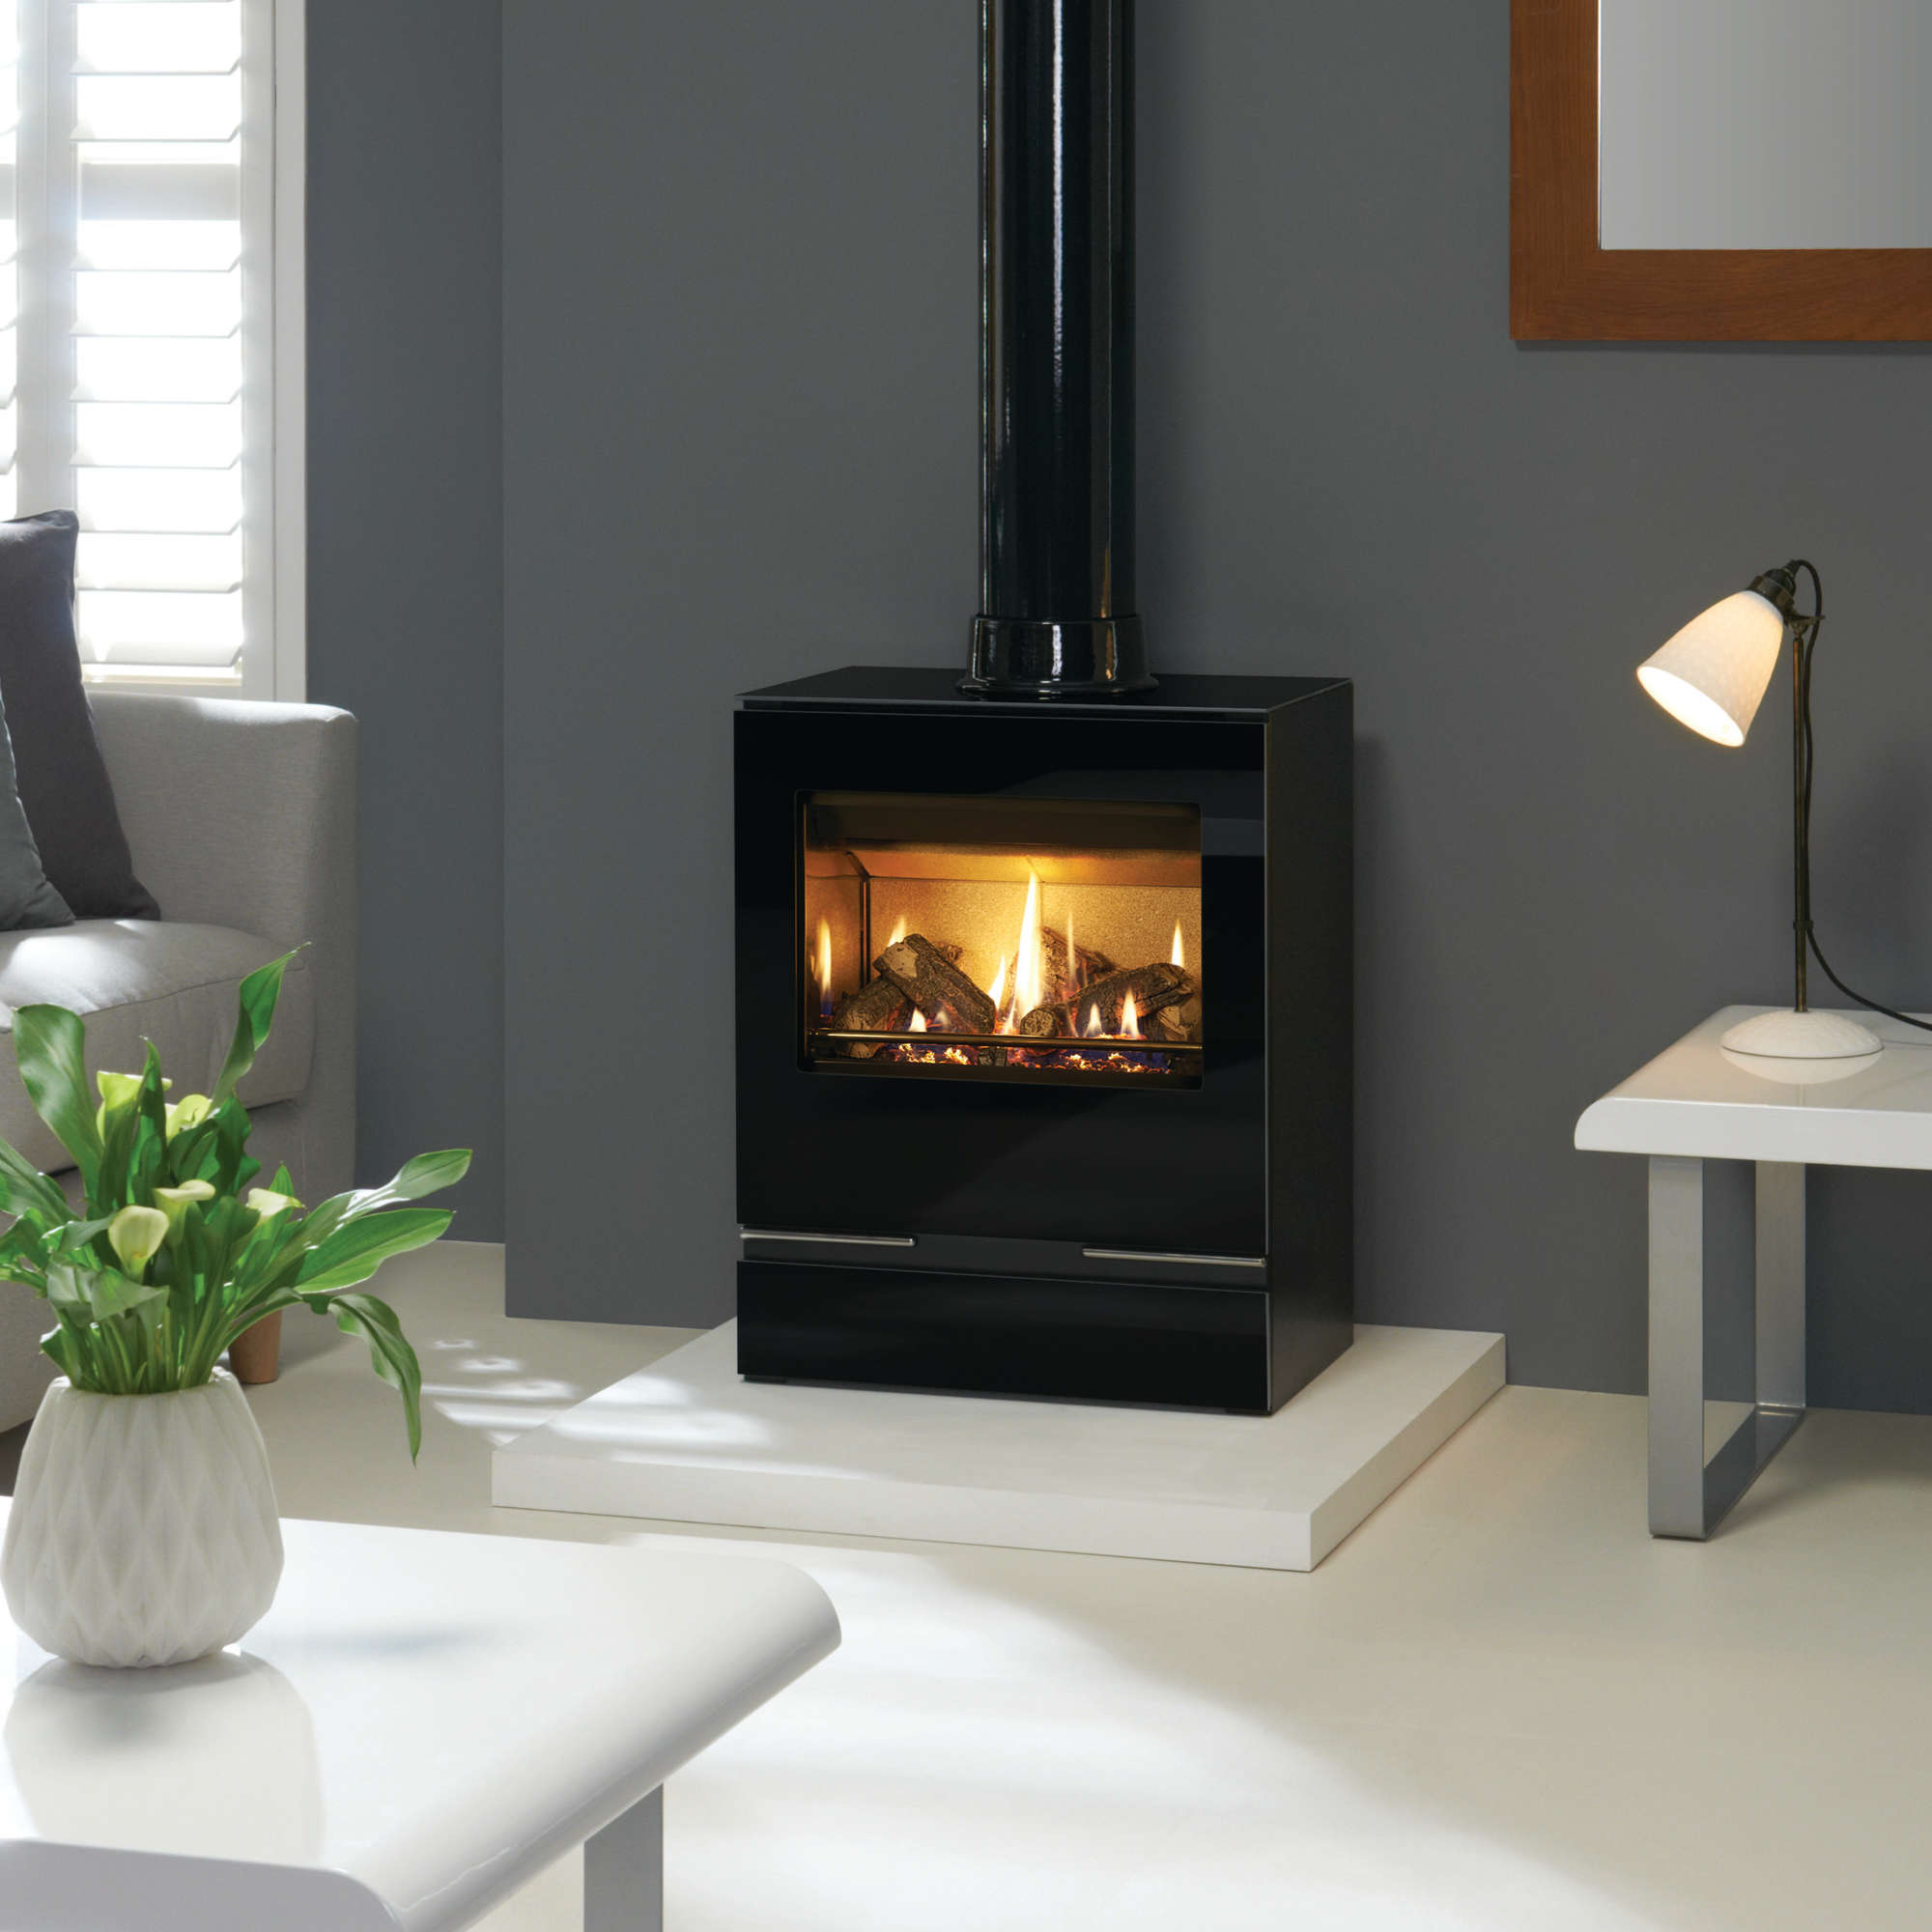 An image of Gazco Vision Medium Gas Stove - Conventional Flue - Natural Gas - rear